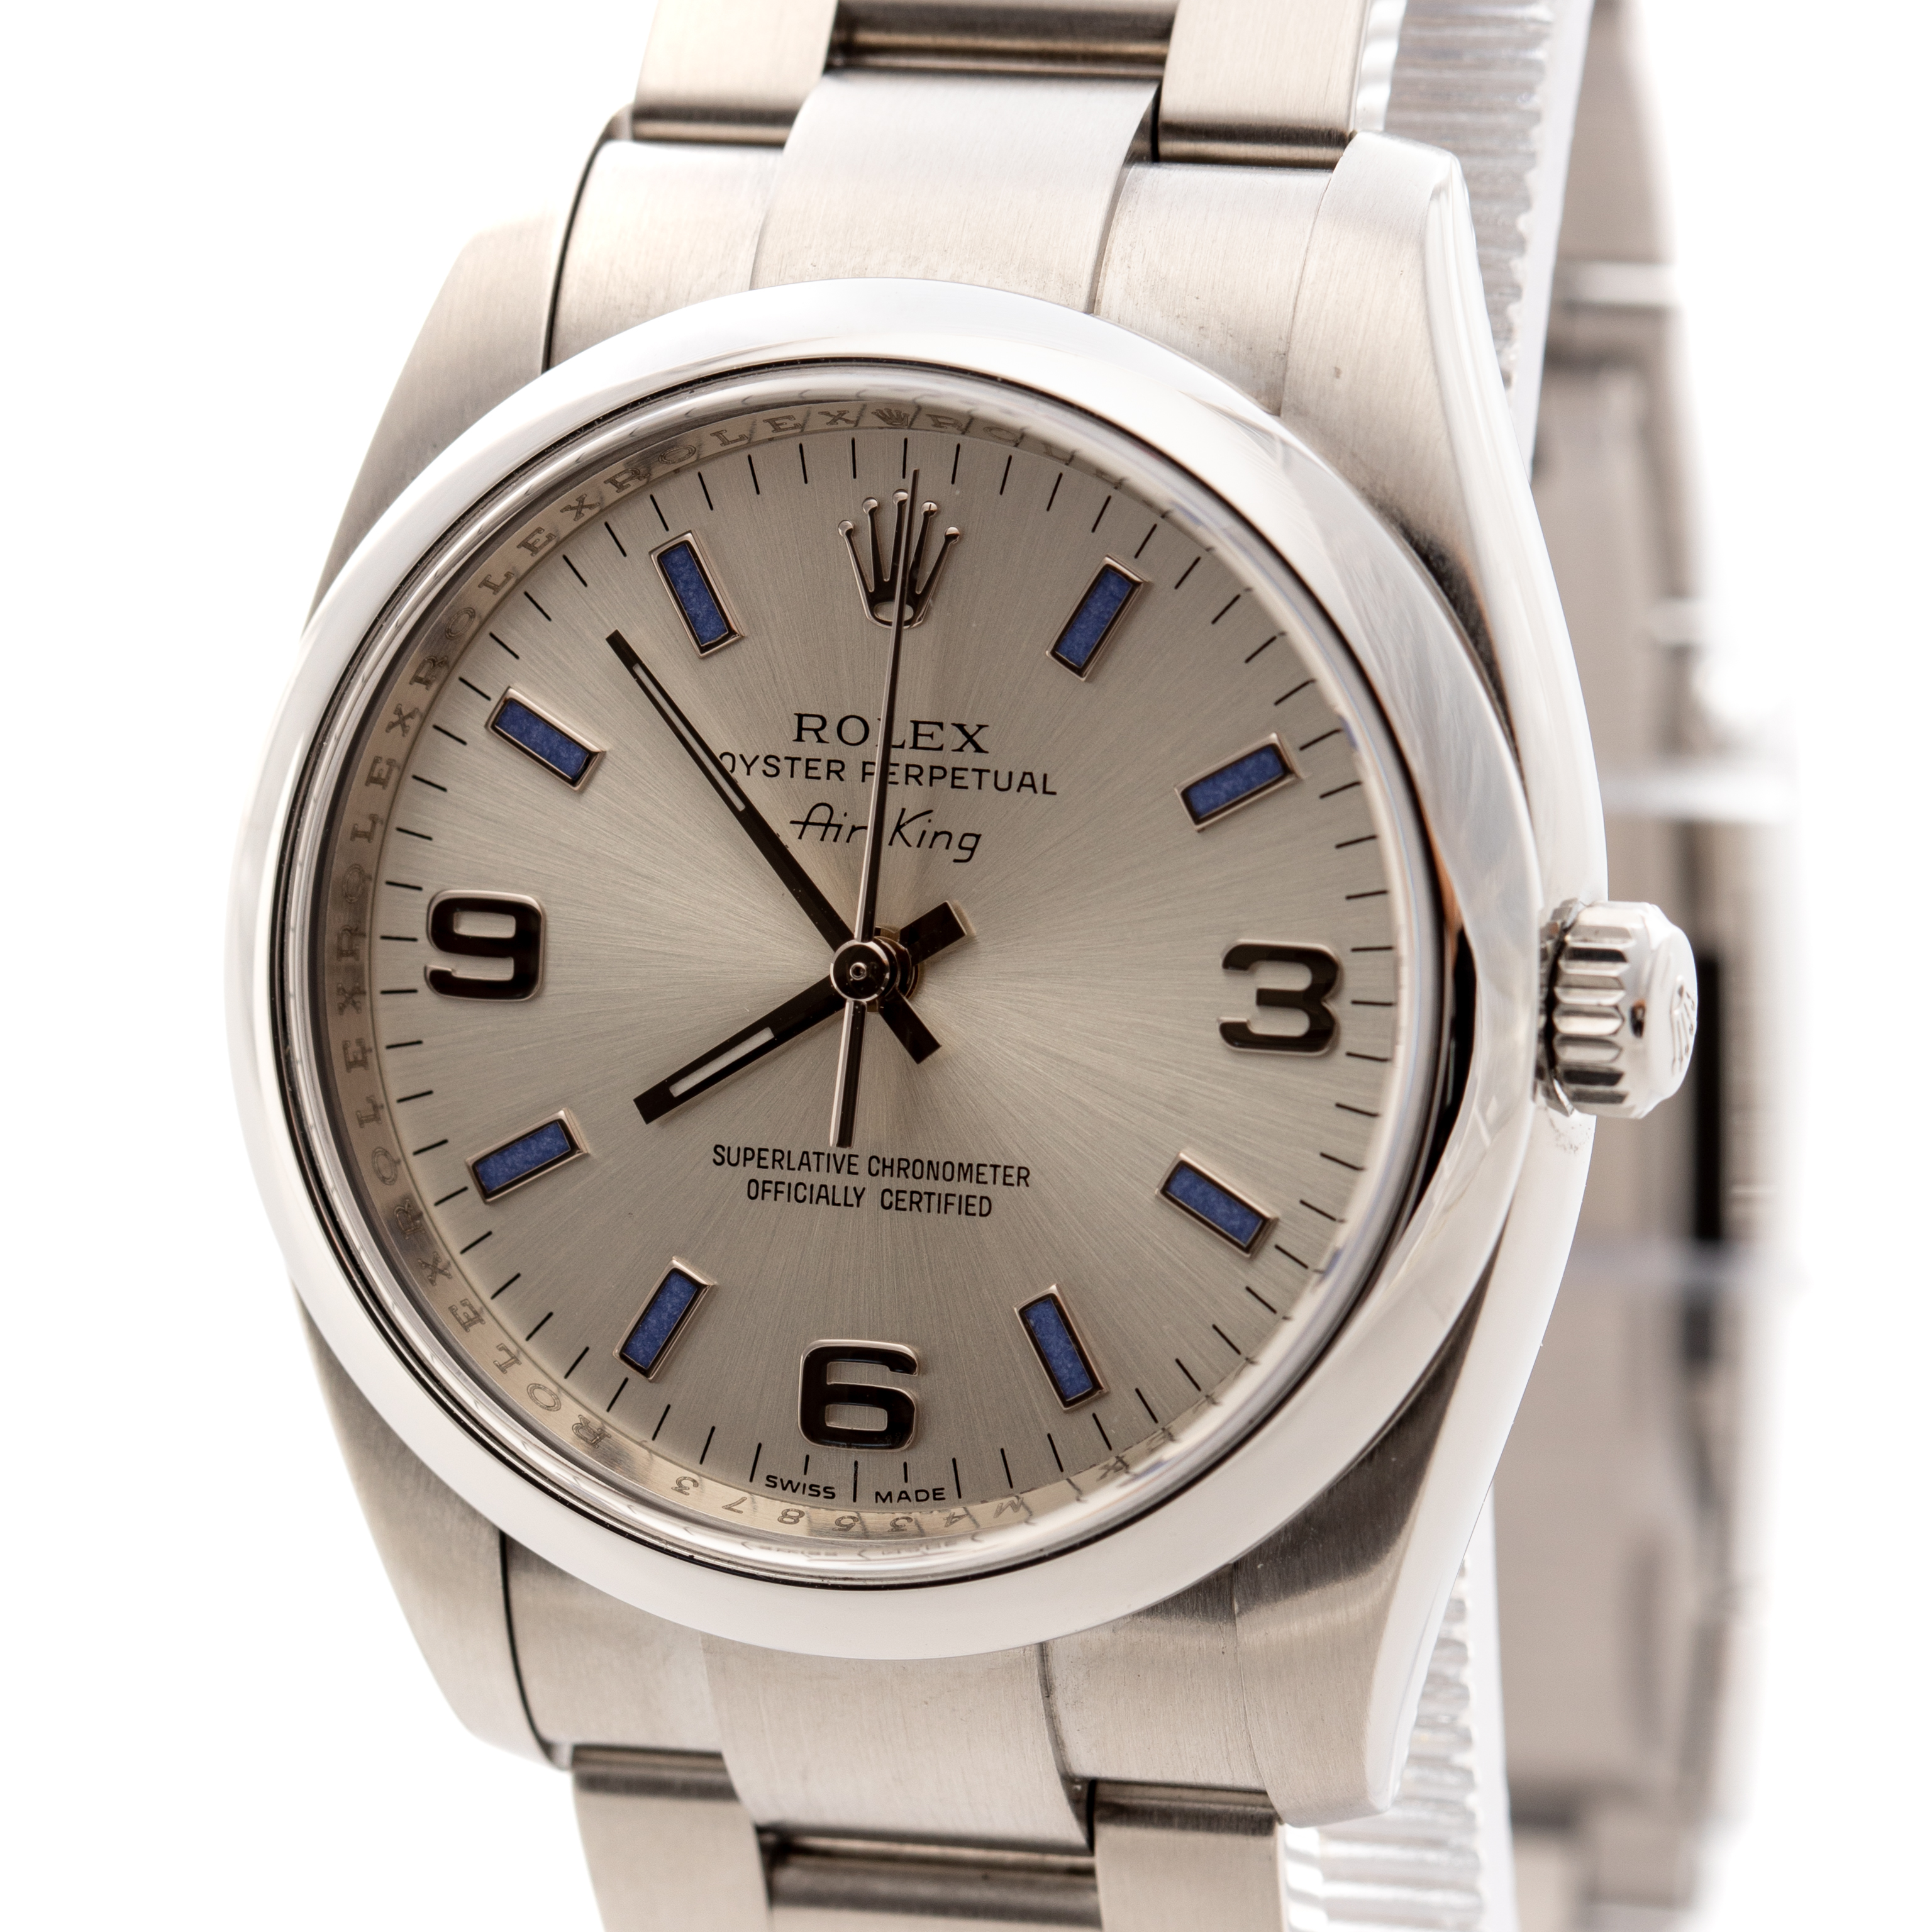 ROLEX OYSTER PERPETUAL AIR KING SILVER DIAL REF: 114200